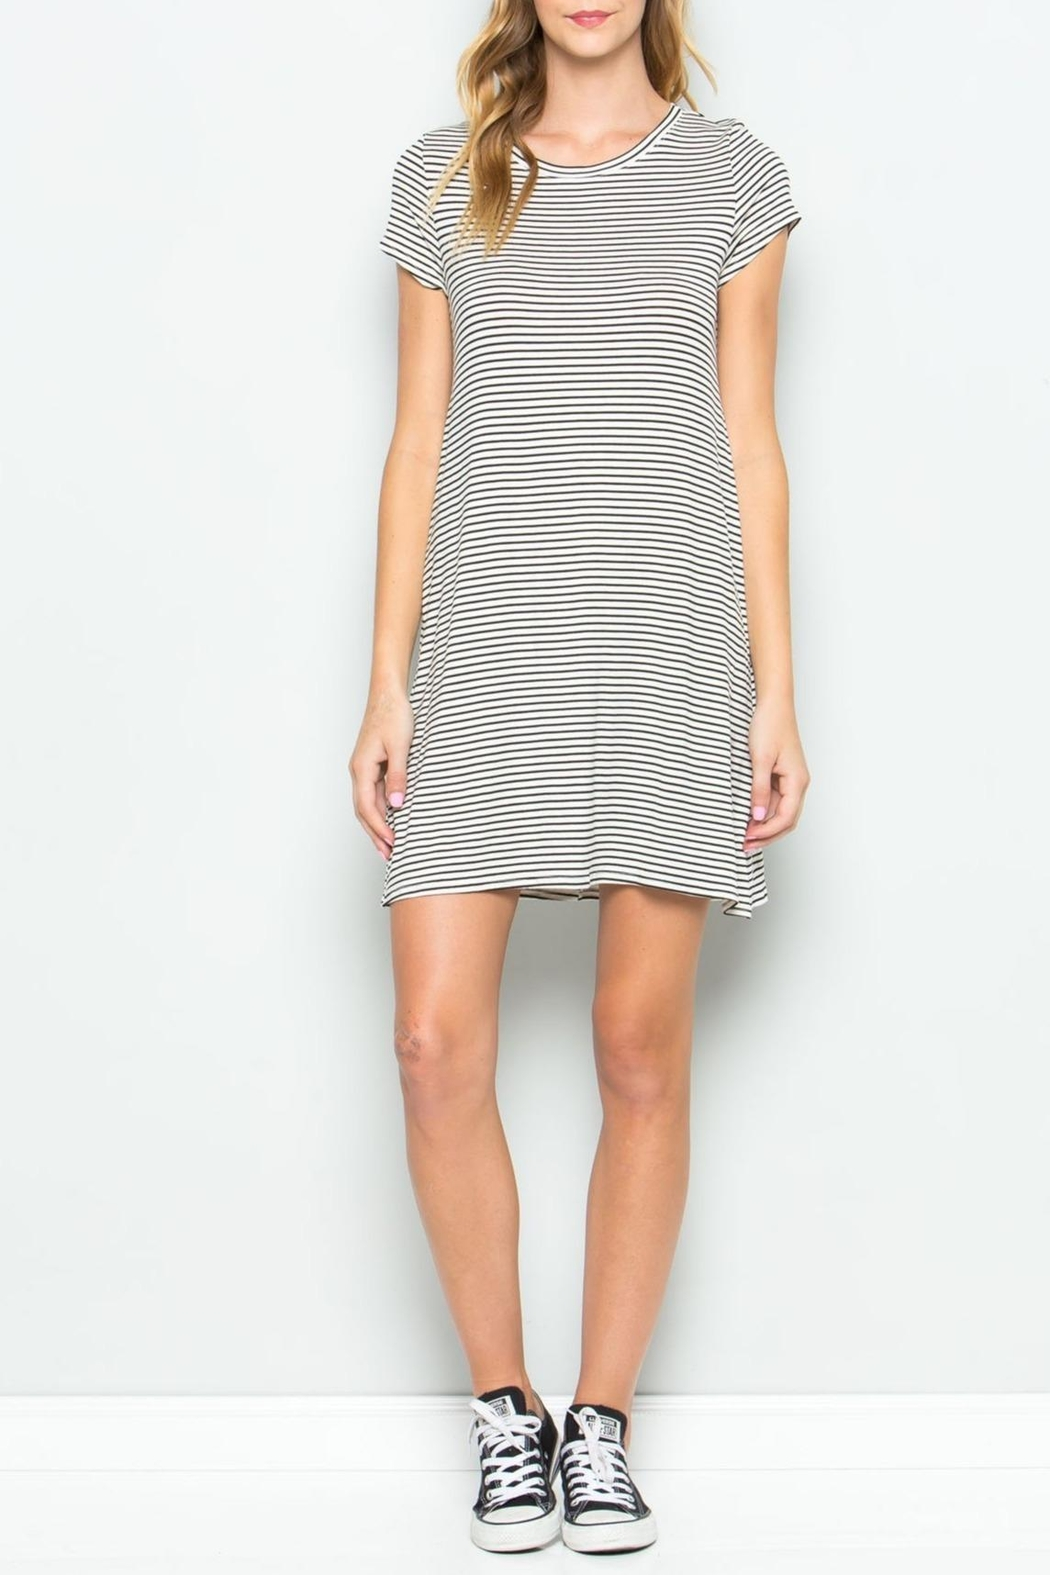 Apricot Lane Pin-Stripe Tee Dress - Main Image